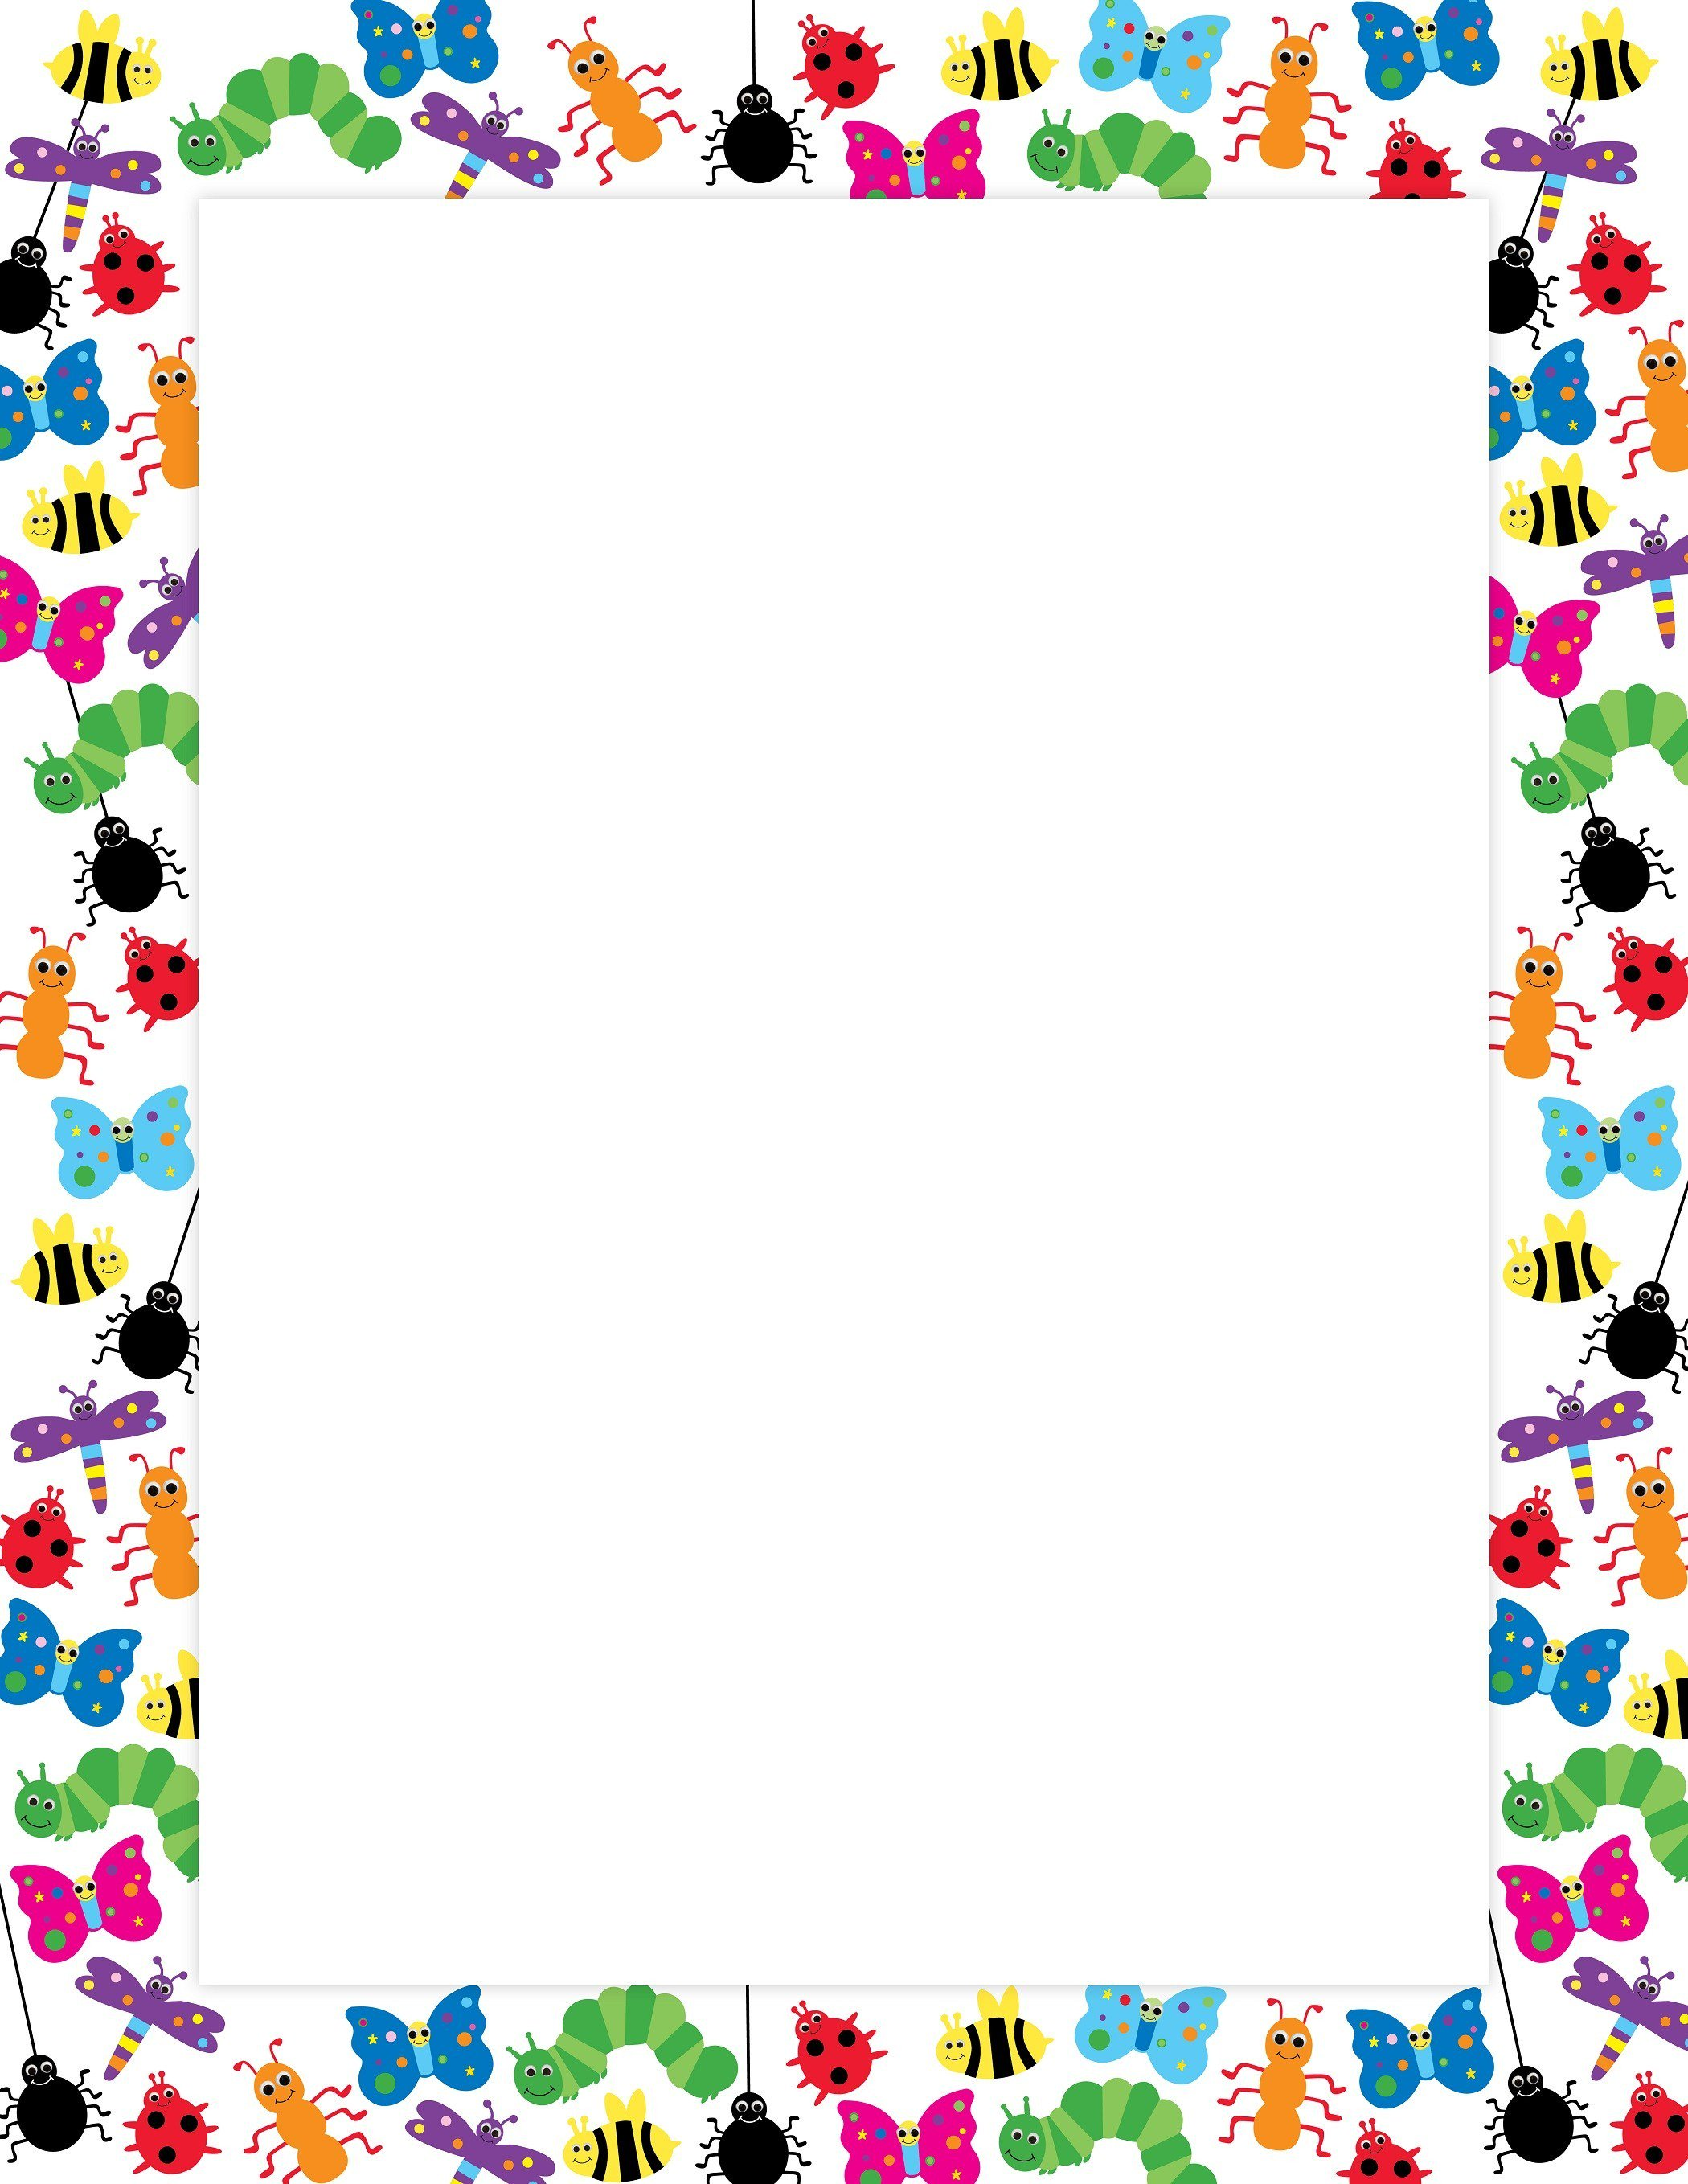 Bugs clipart border, Bugs border Transparent FREE for.